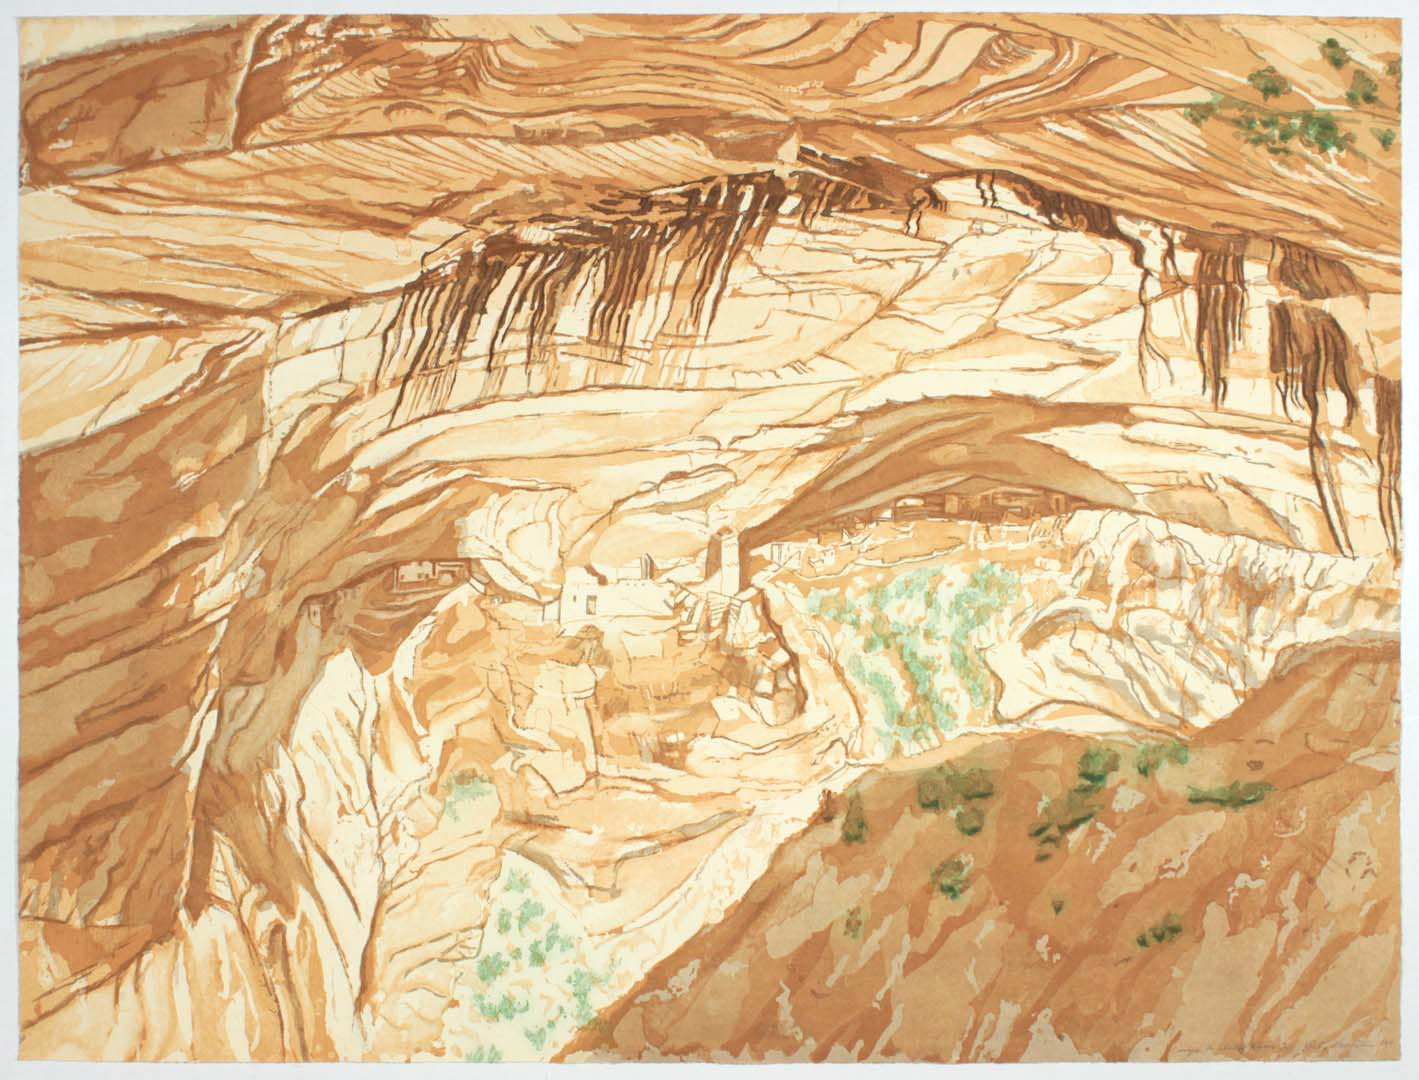 1994 Canyon de Chelly Ruins Aquatint Etching on Paper 33.25 x 44.5